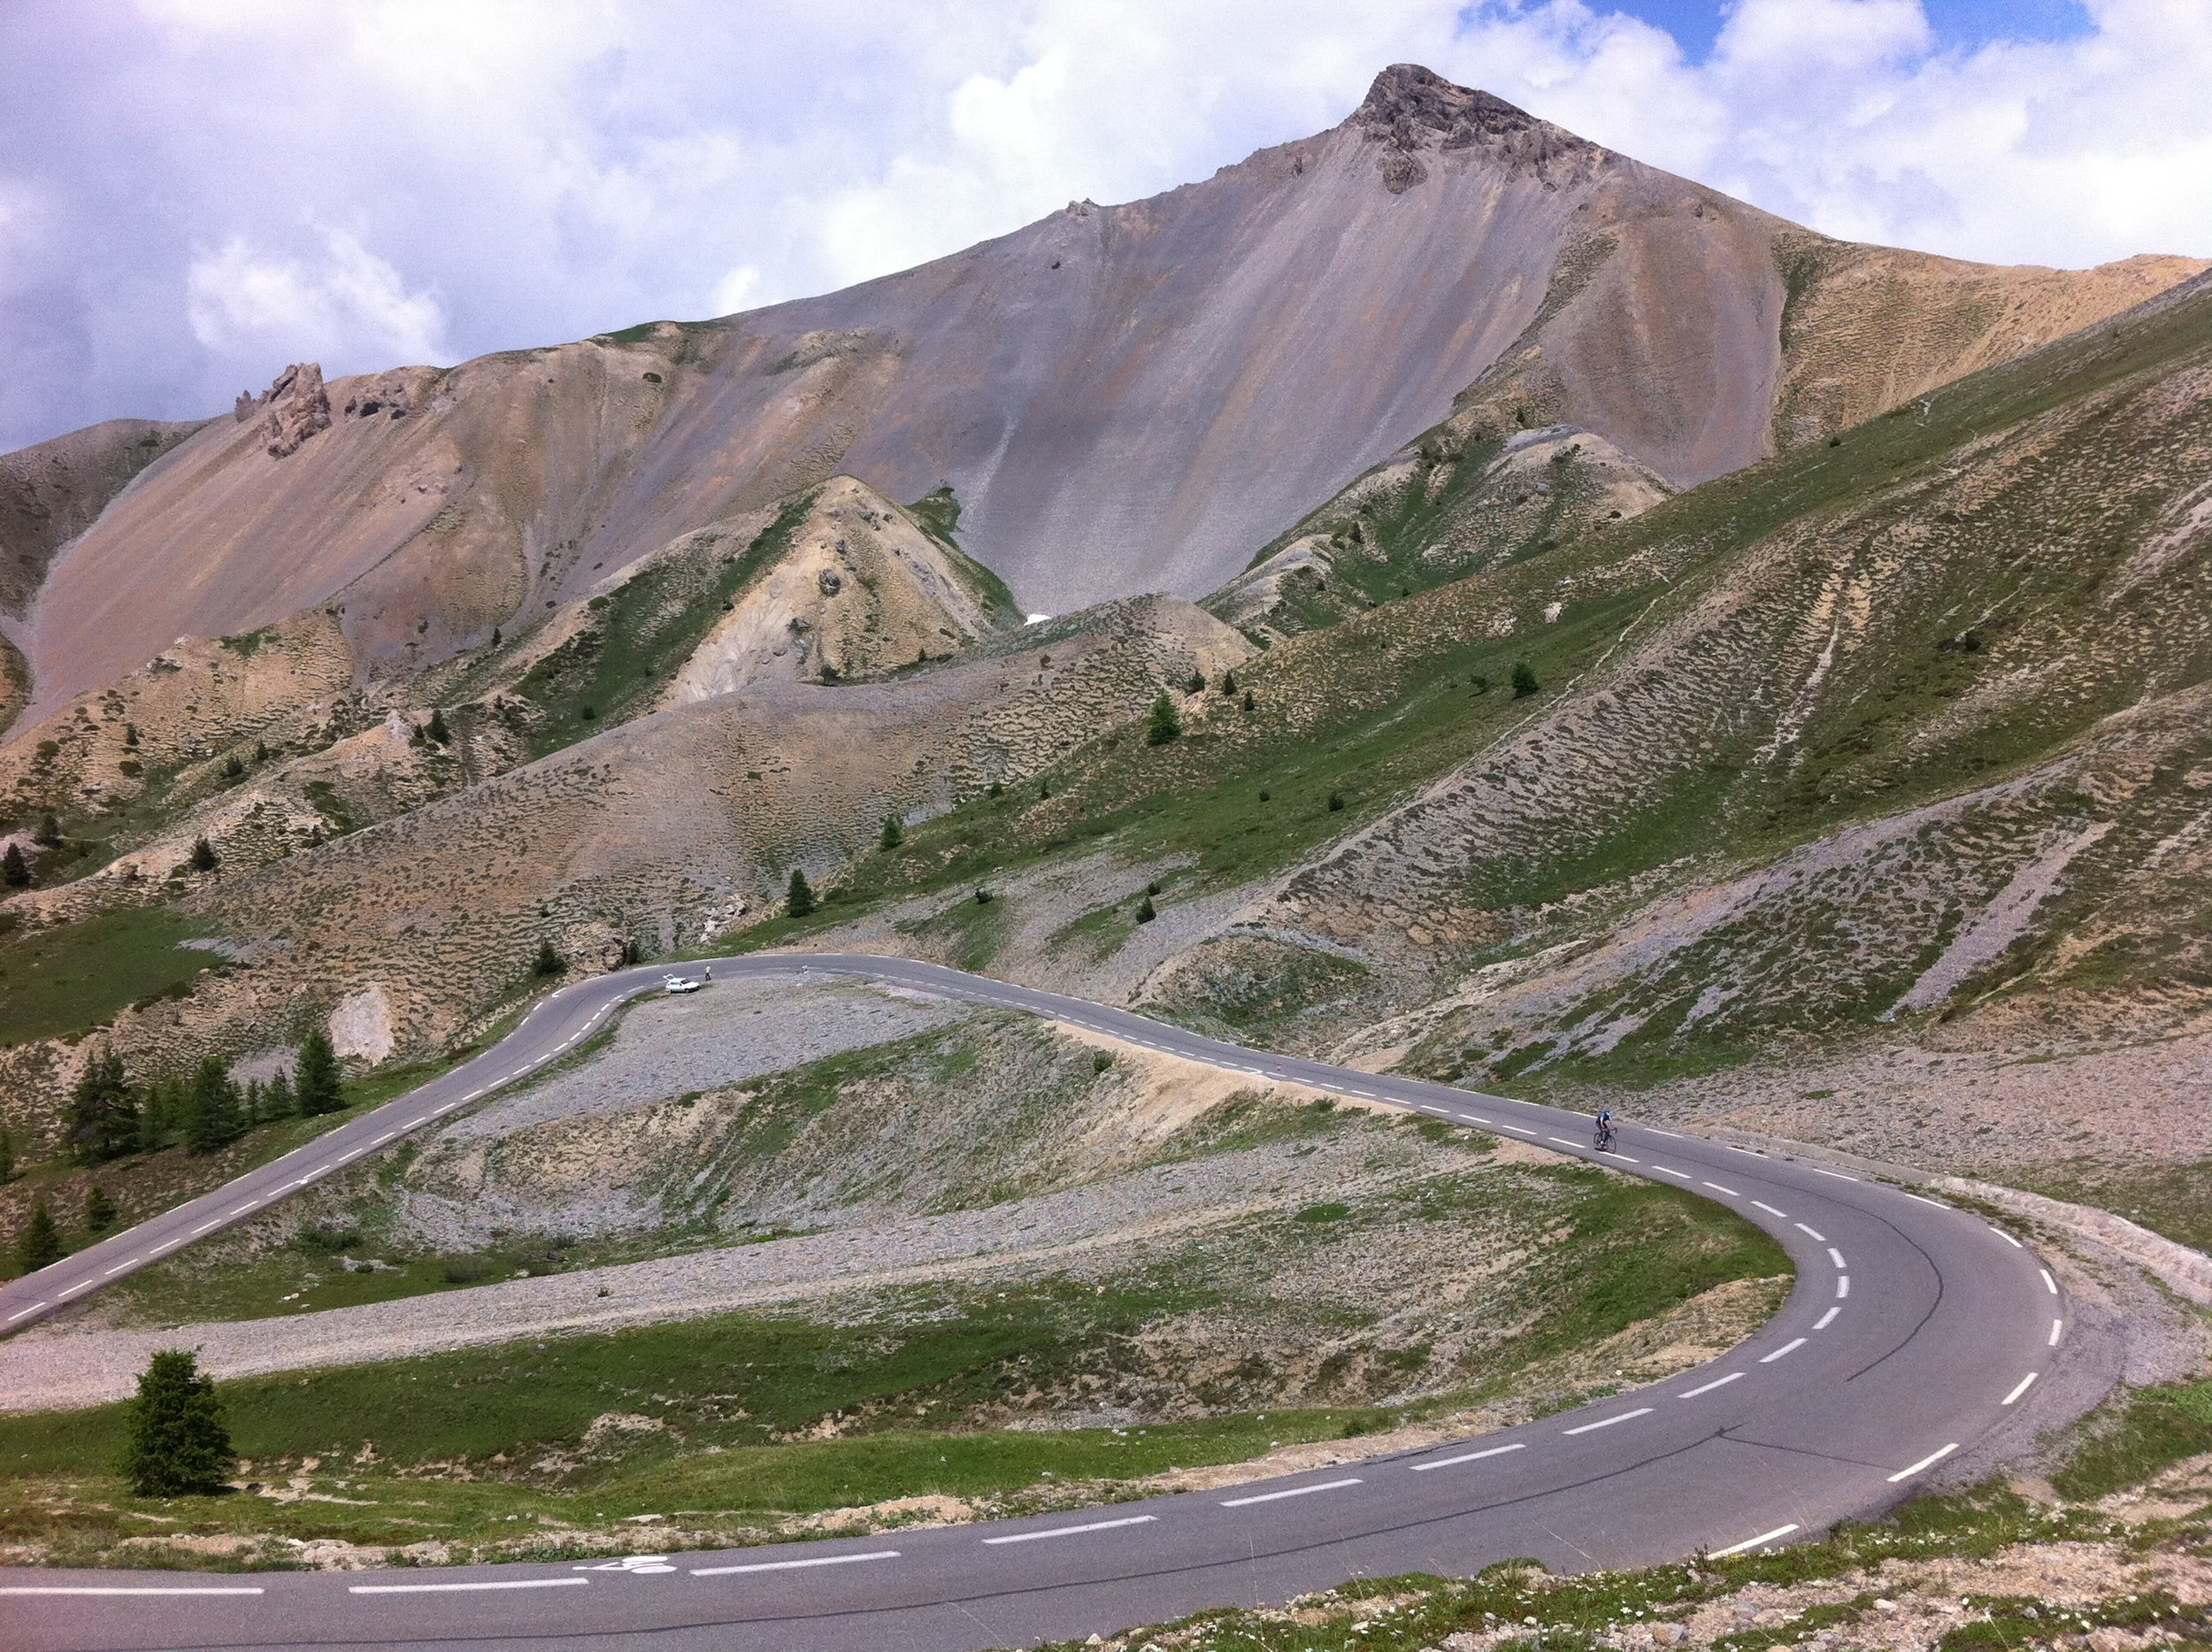 Sweeping roads through the barren slopes of the Col d'Izoard